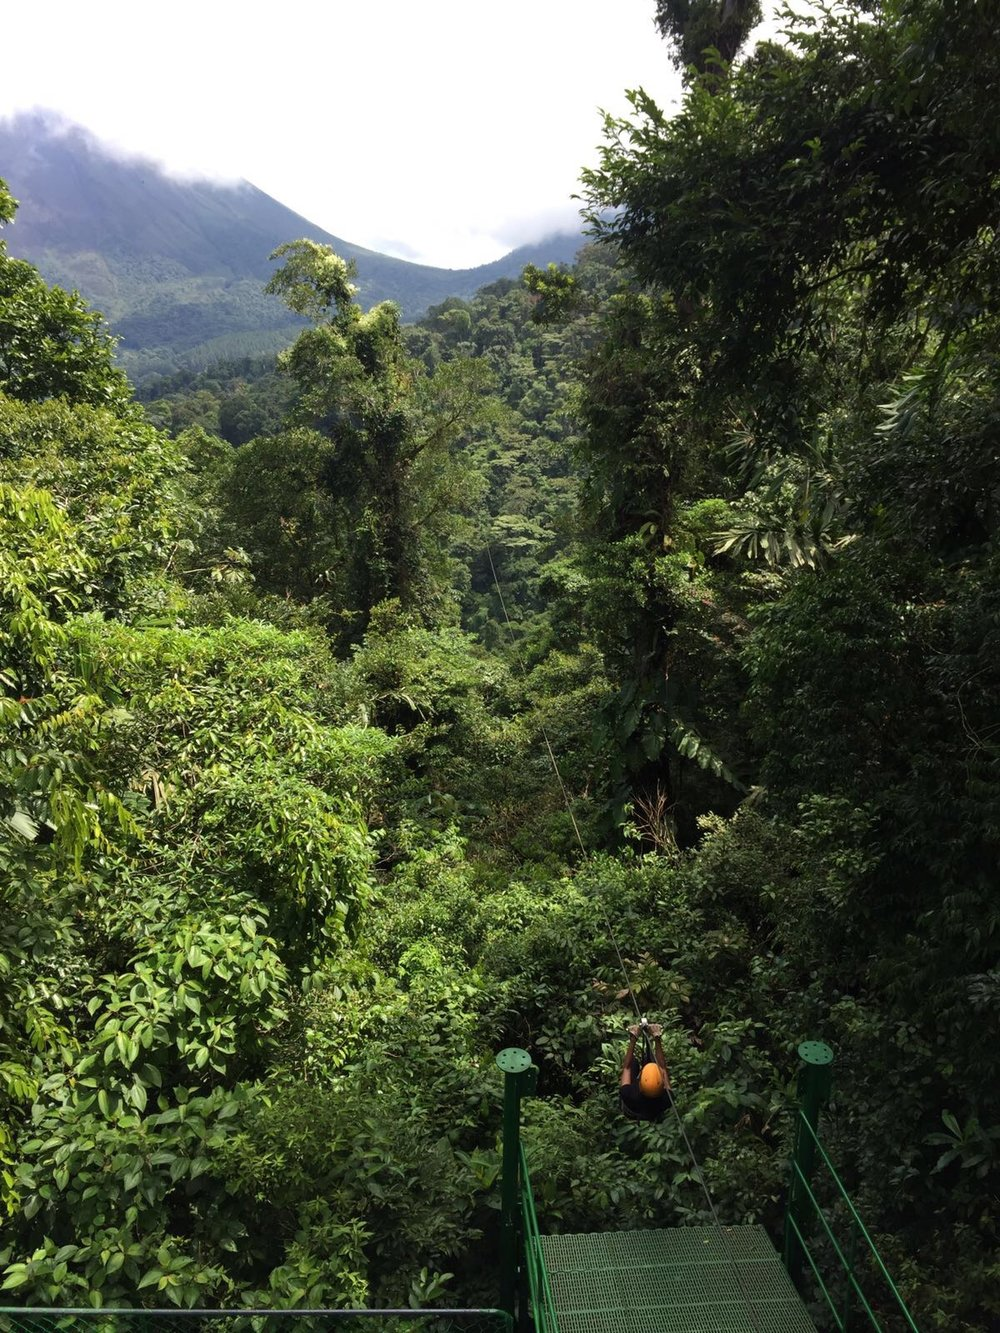 Zip lining through Costa Rican rainforest | Helena Alyssa